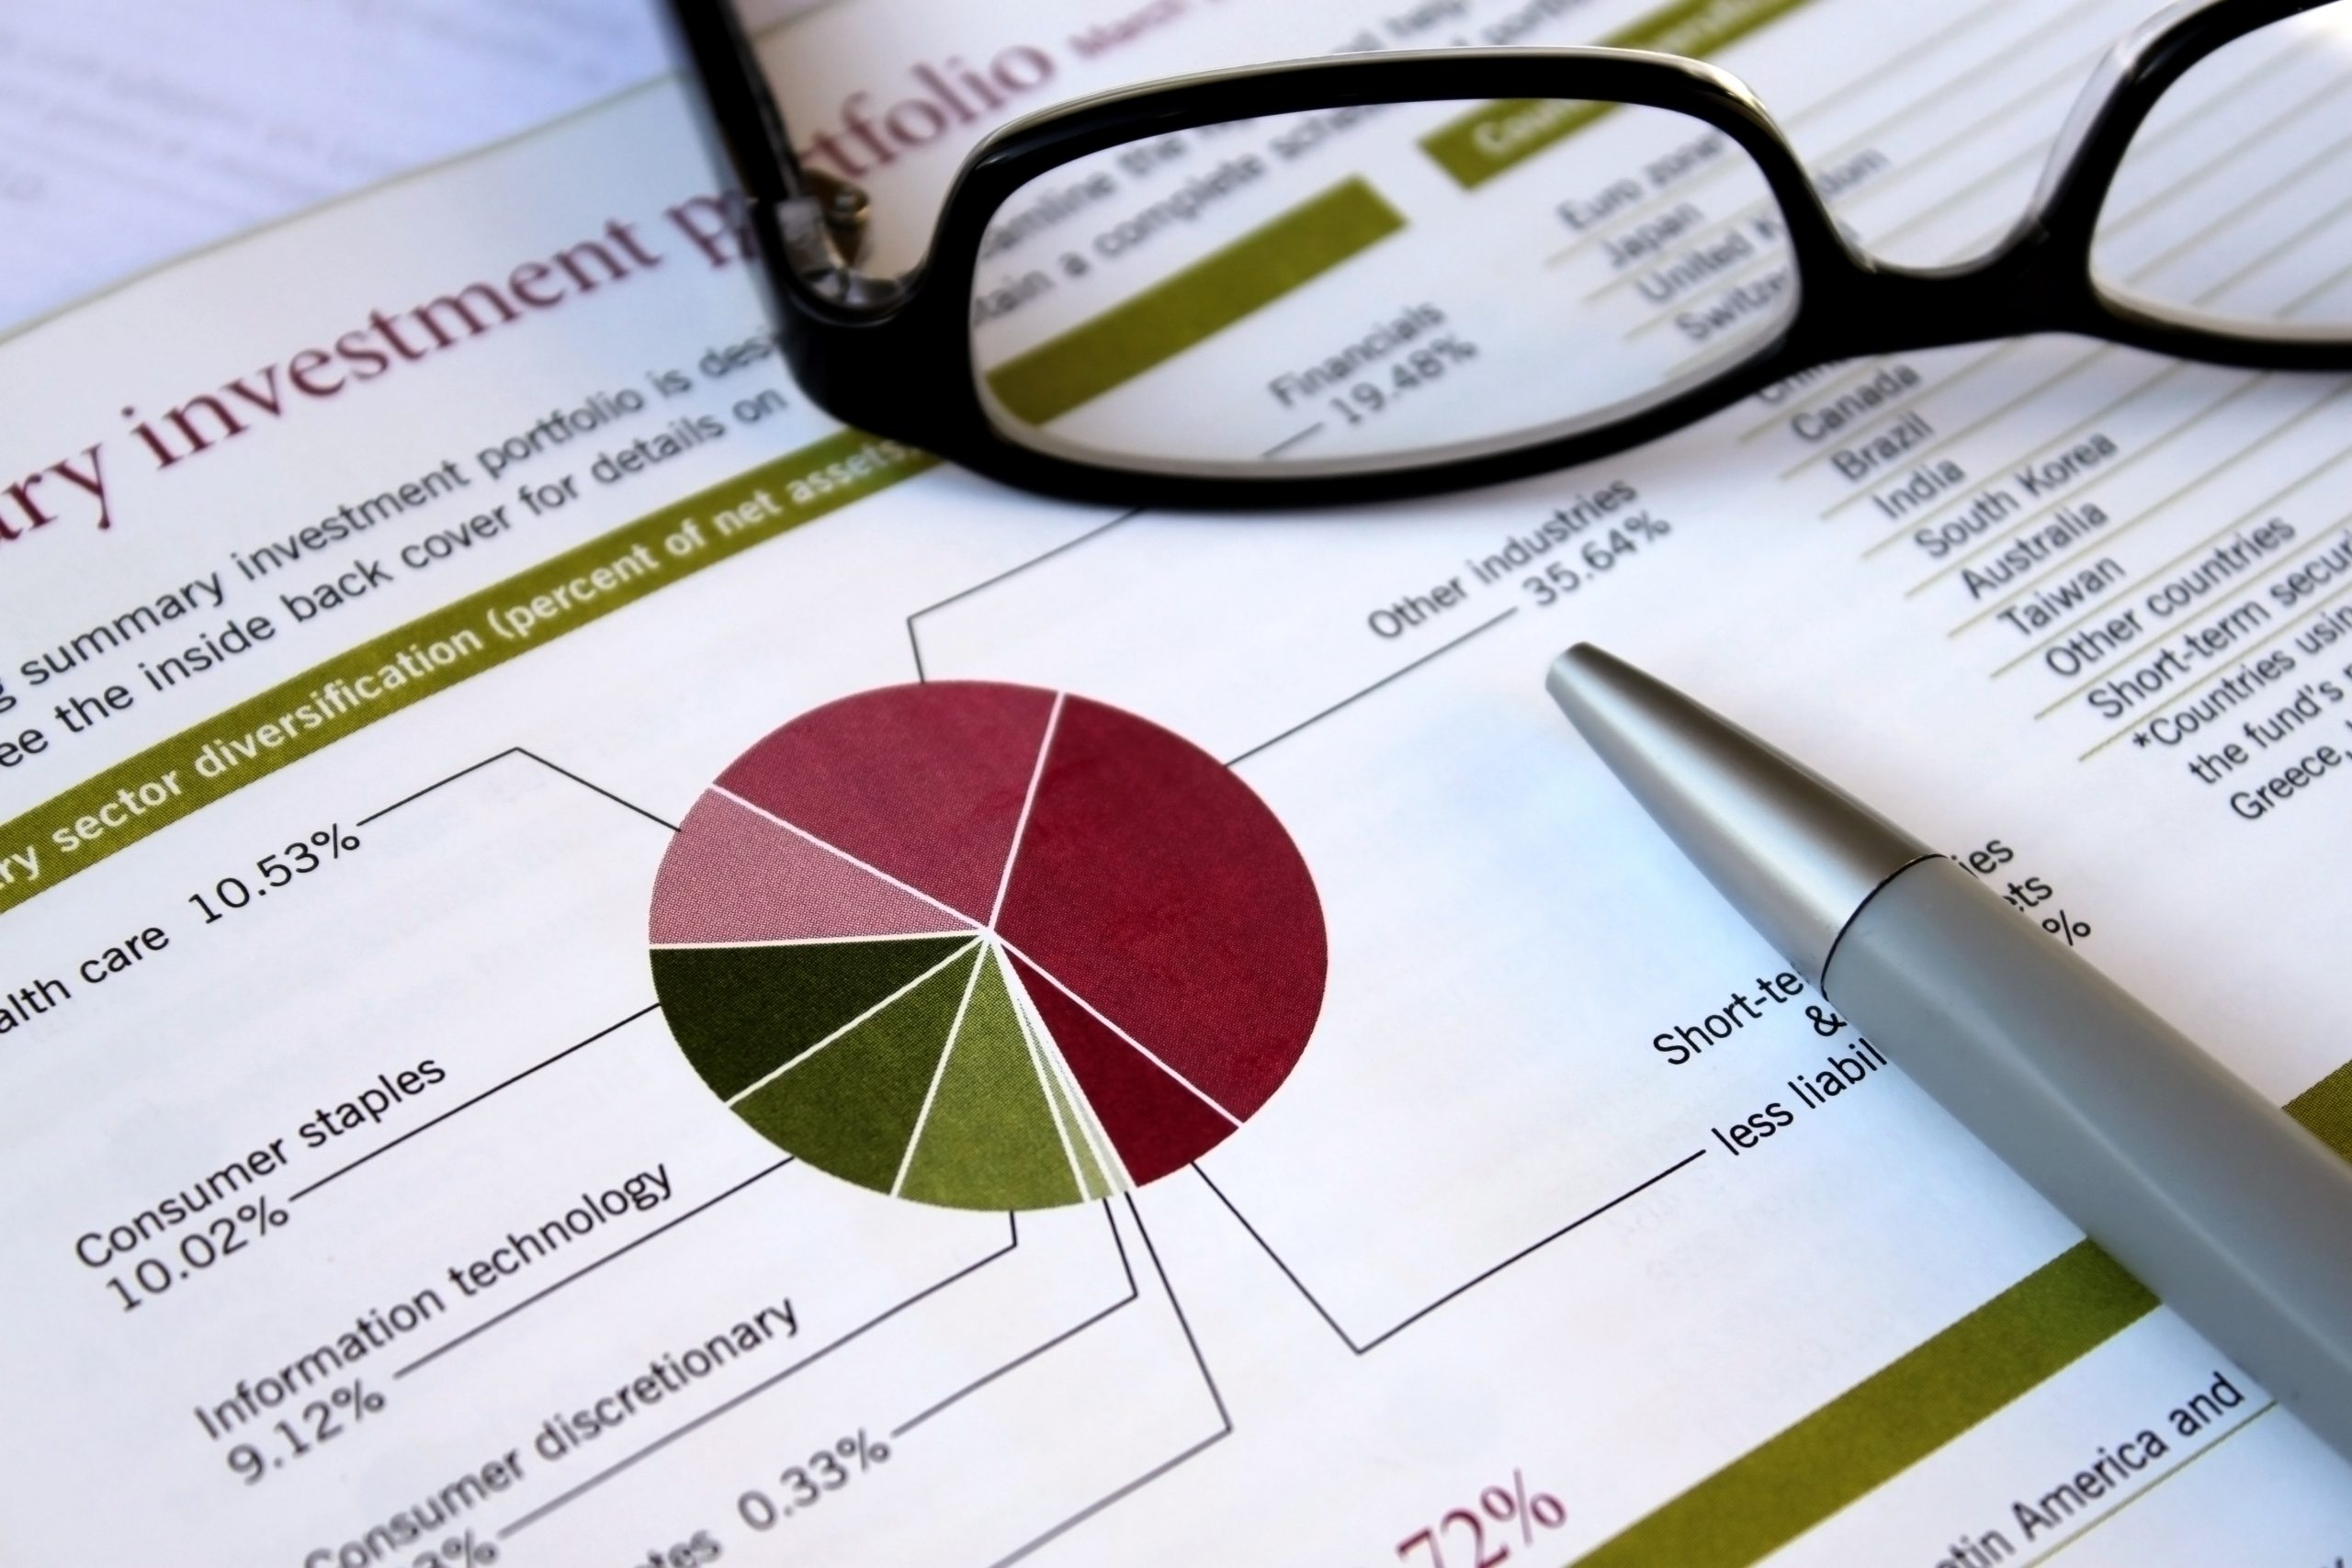 Retirement Planning Consultants discuss the benefits of dimensional funds and vanguard